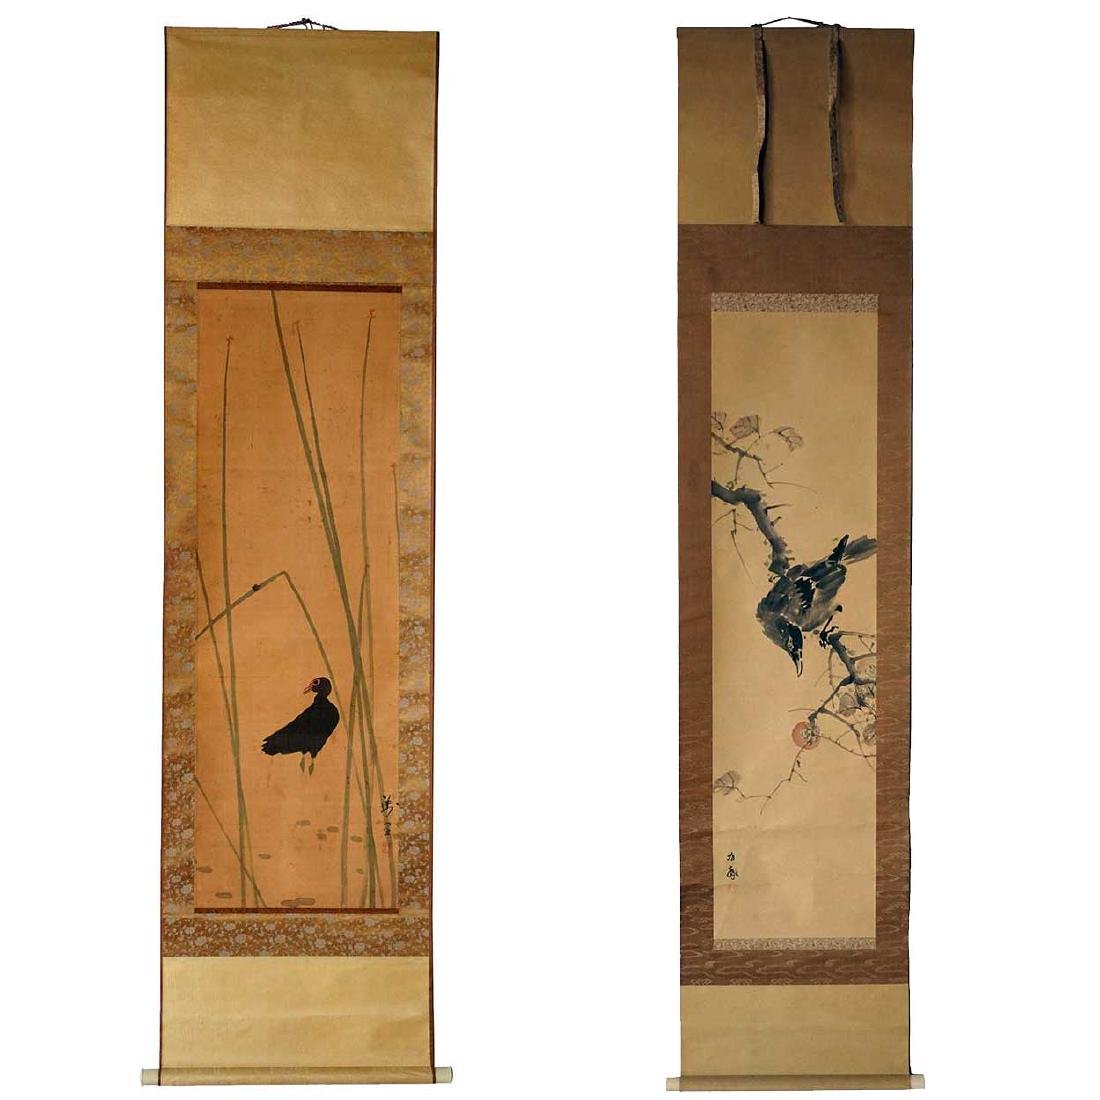 2 Vintage Japanese Hanging Scroll (Kakejiku) Paintings